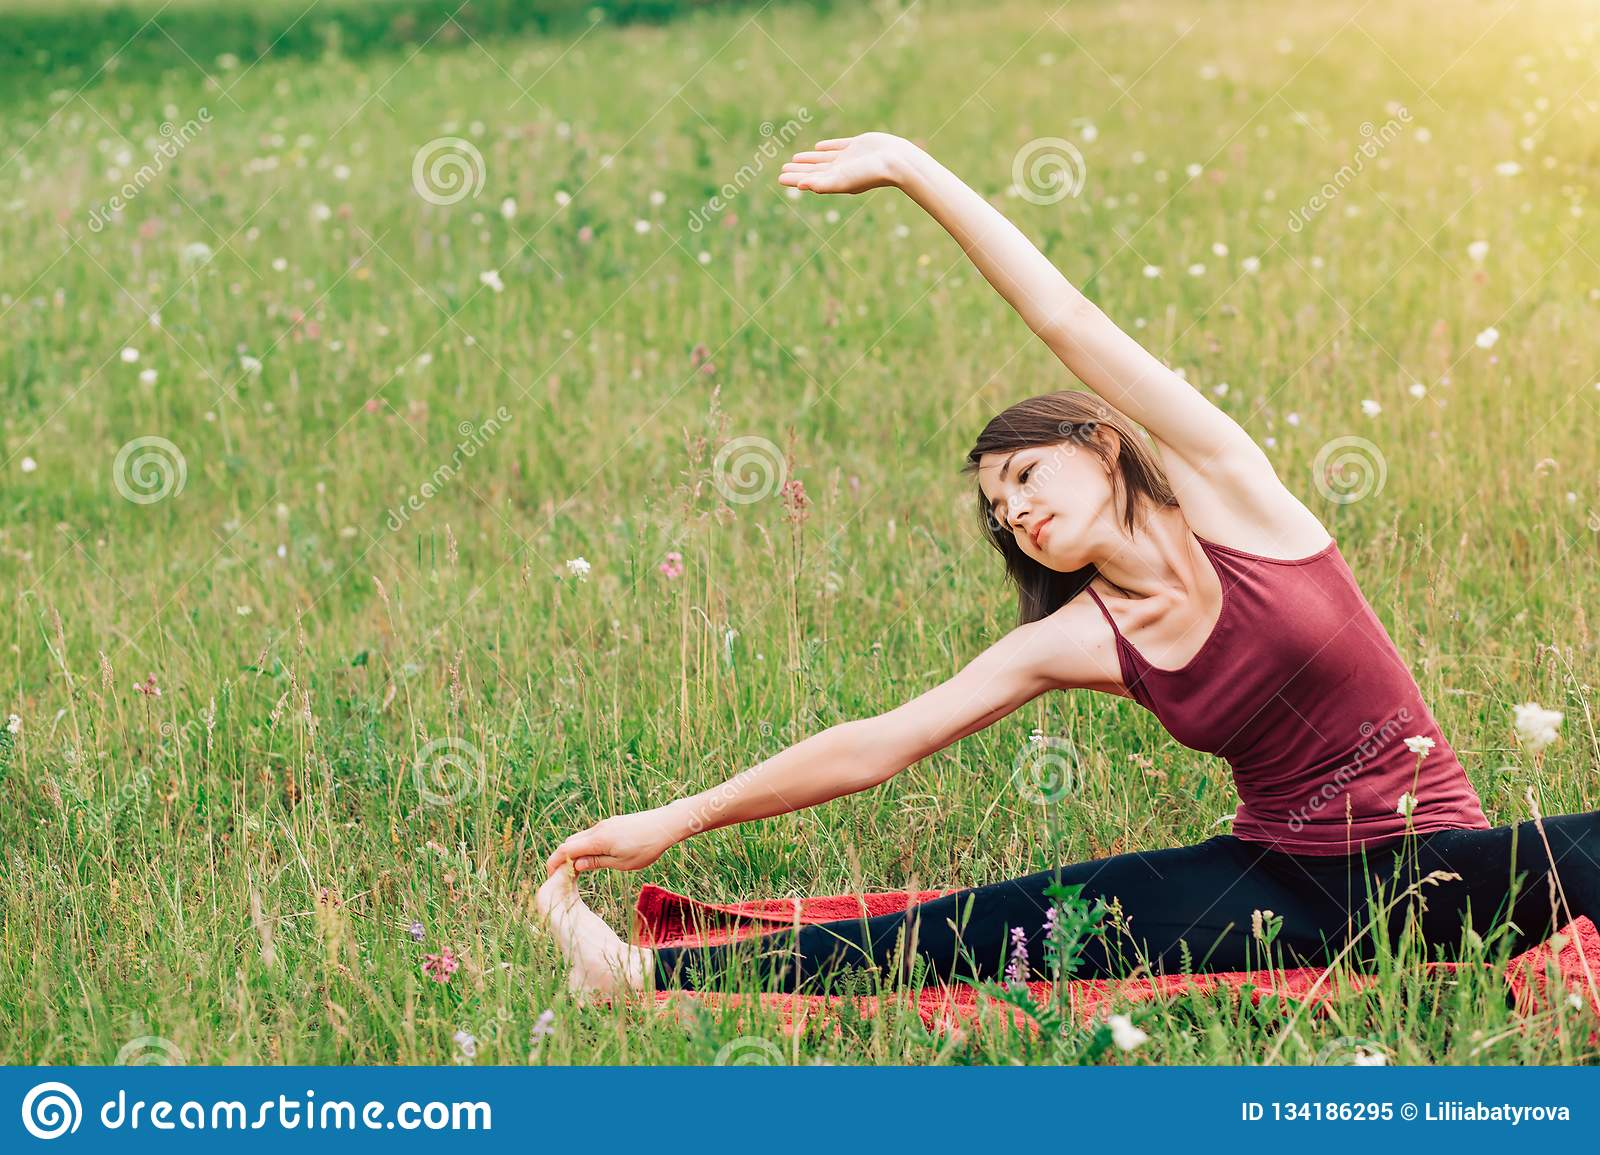 Yoga And Meditation In Nature On A Sunny Day Beautiful Woman In Burgundy Top On The Background Of Fields And Forests Stock Image Image Of Freedom People 134186295